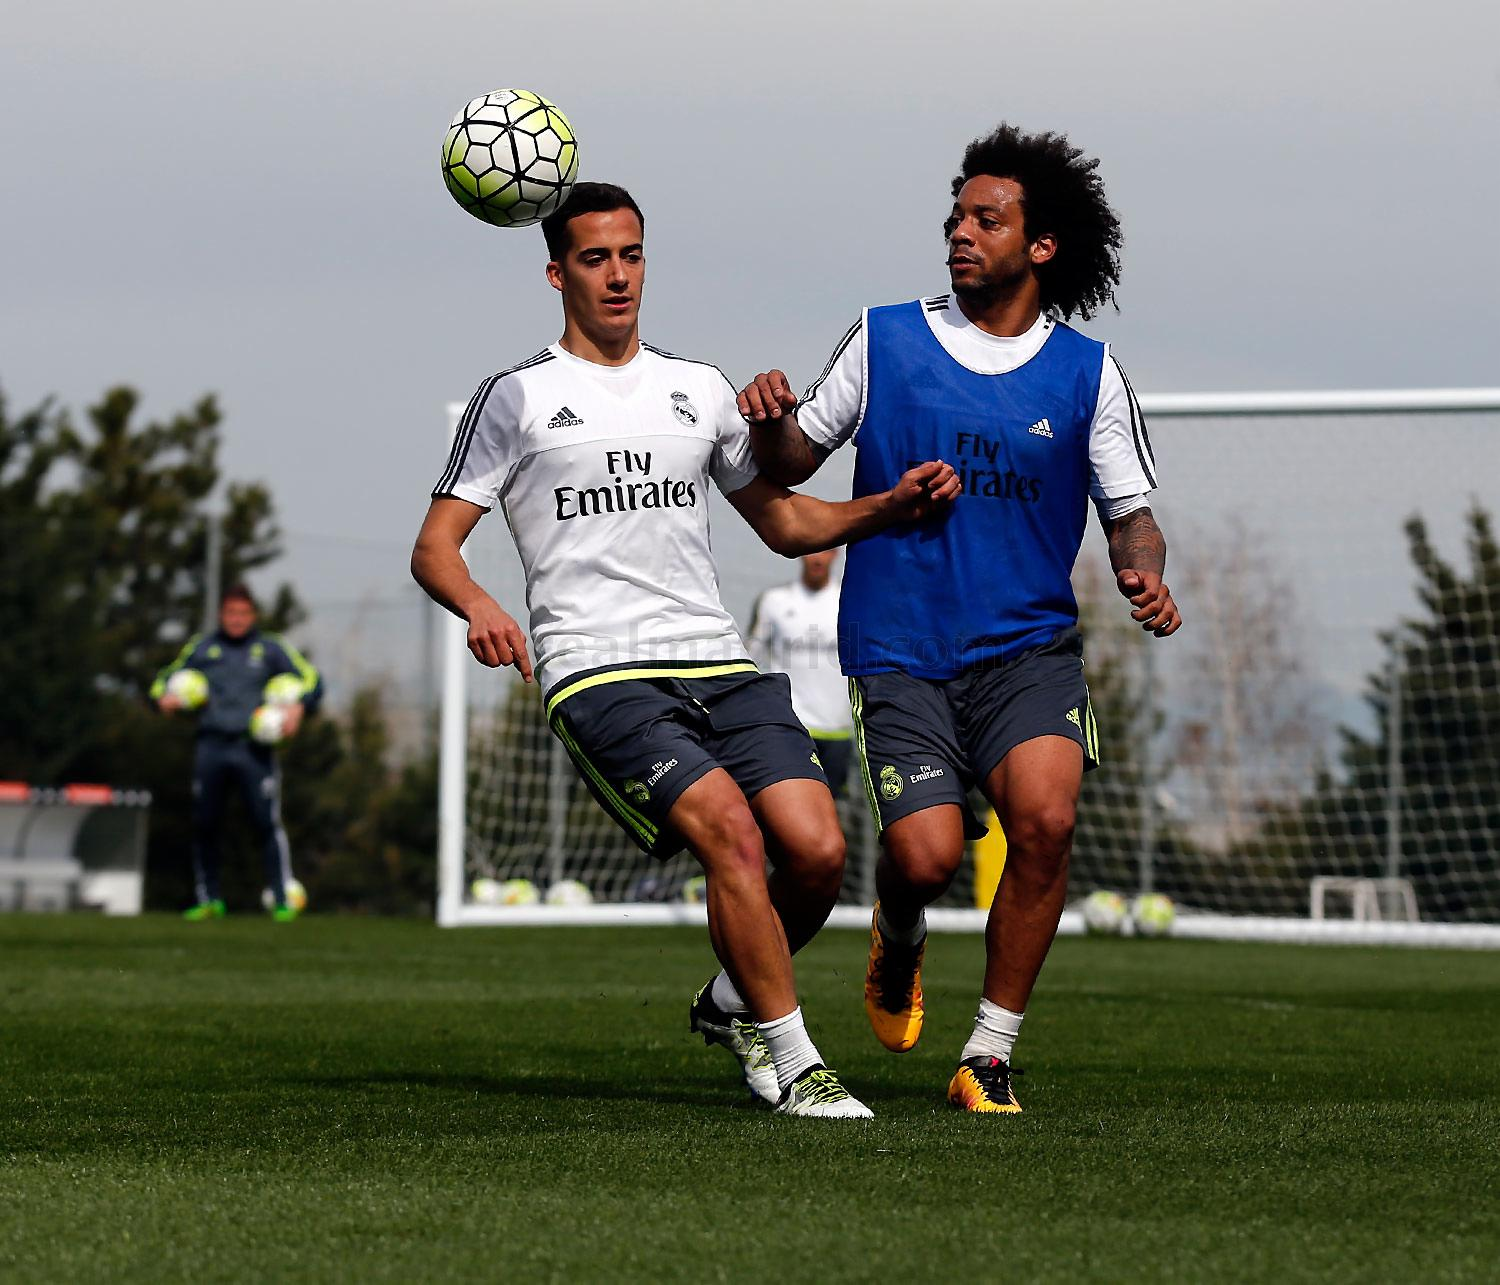 Real Madrid - Entrenamiento del Real Madrid - 25-03-2016